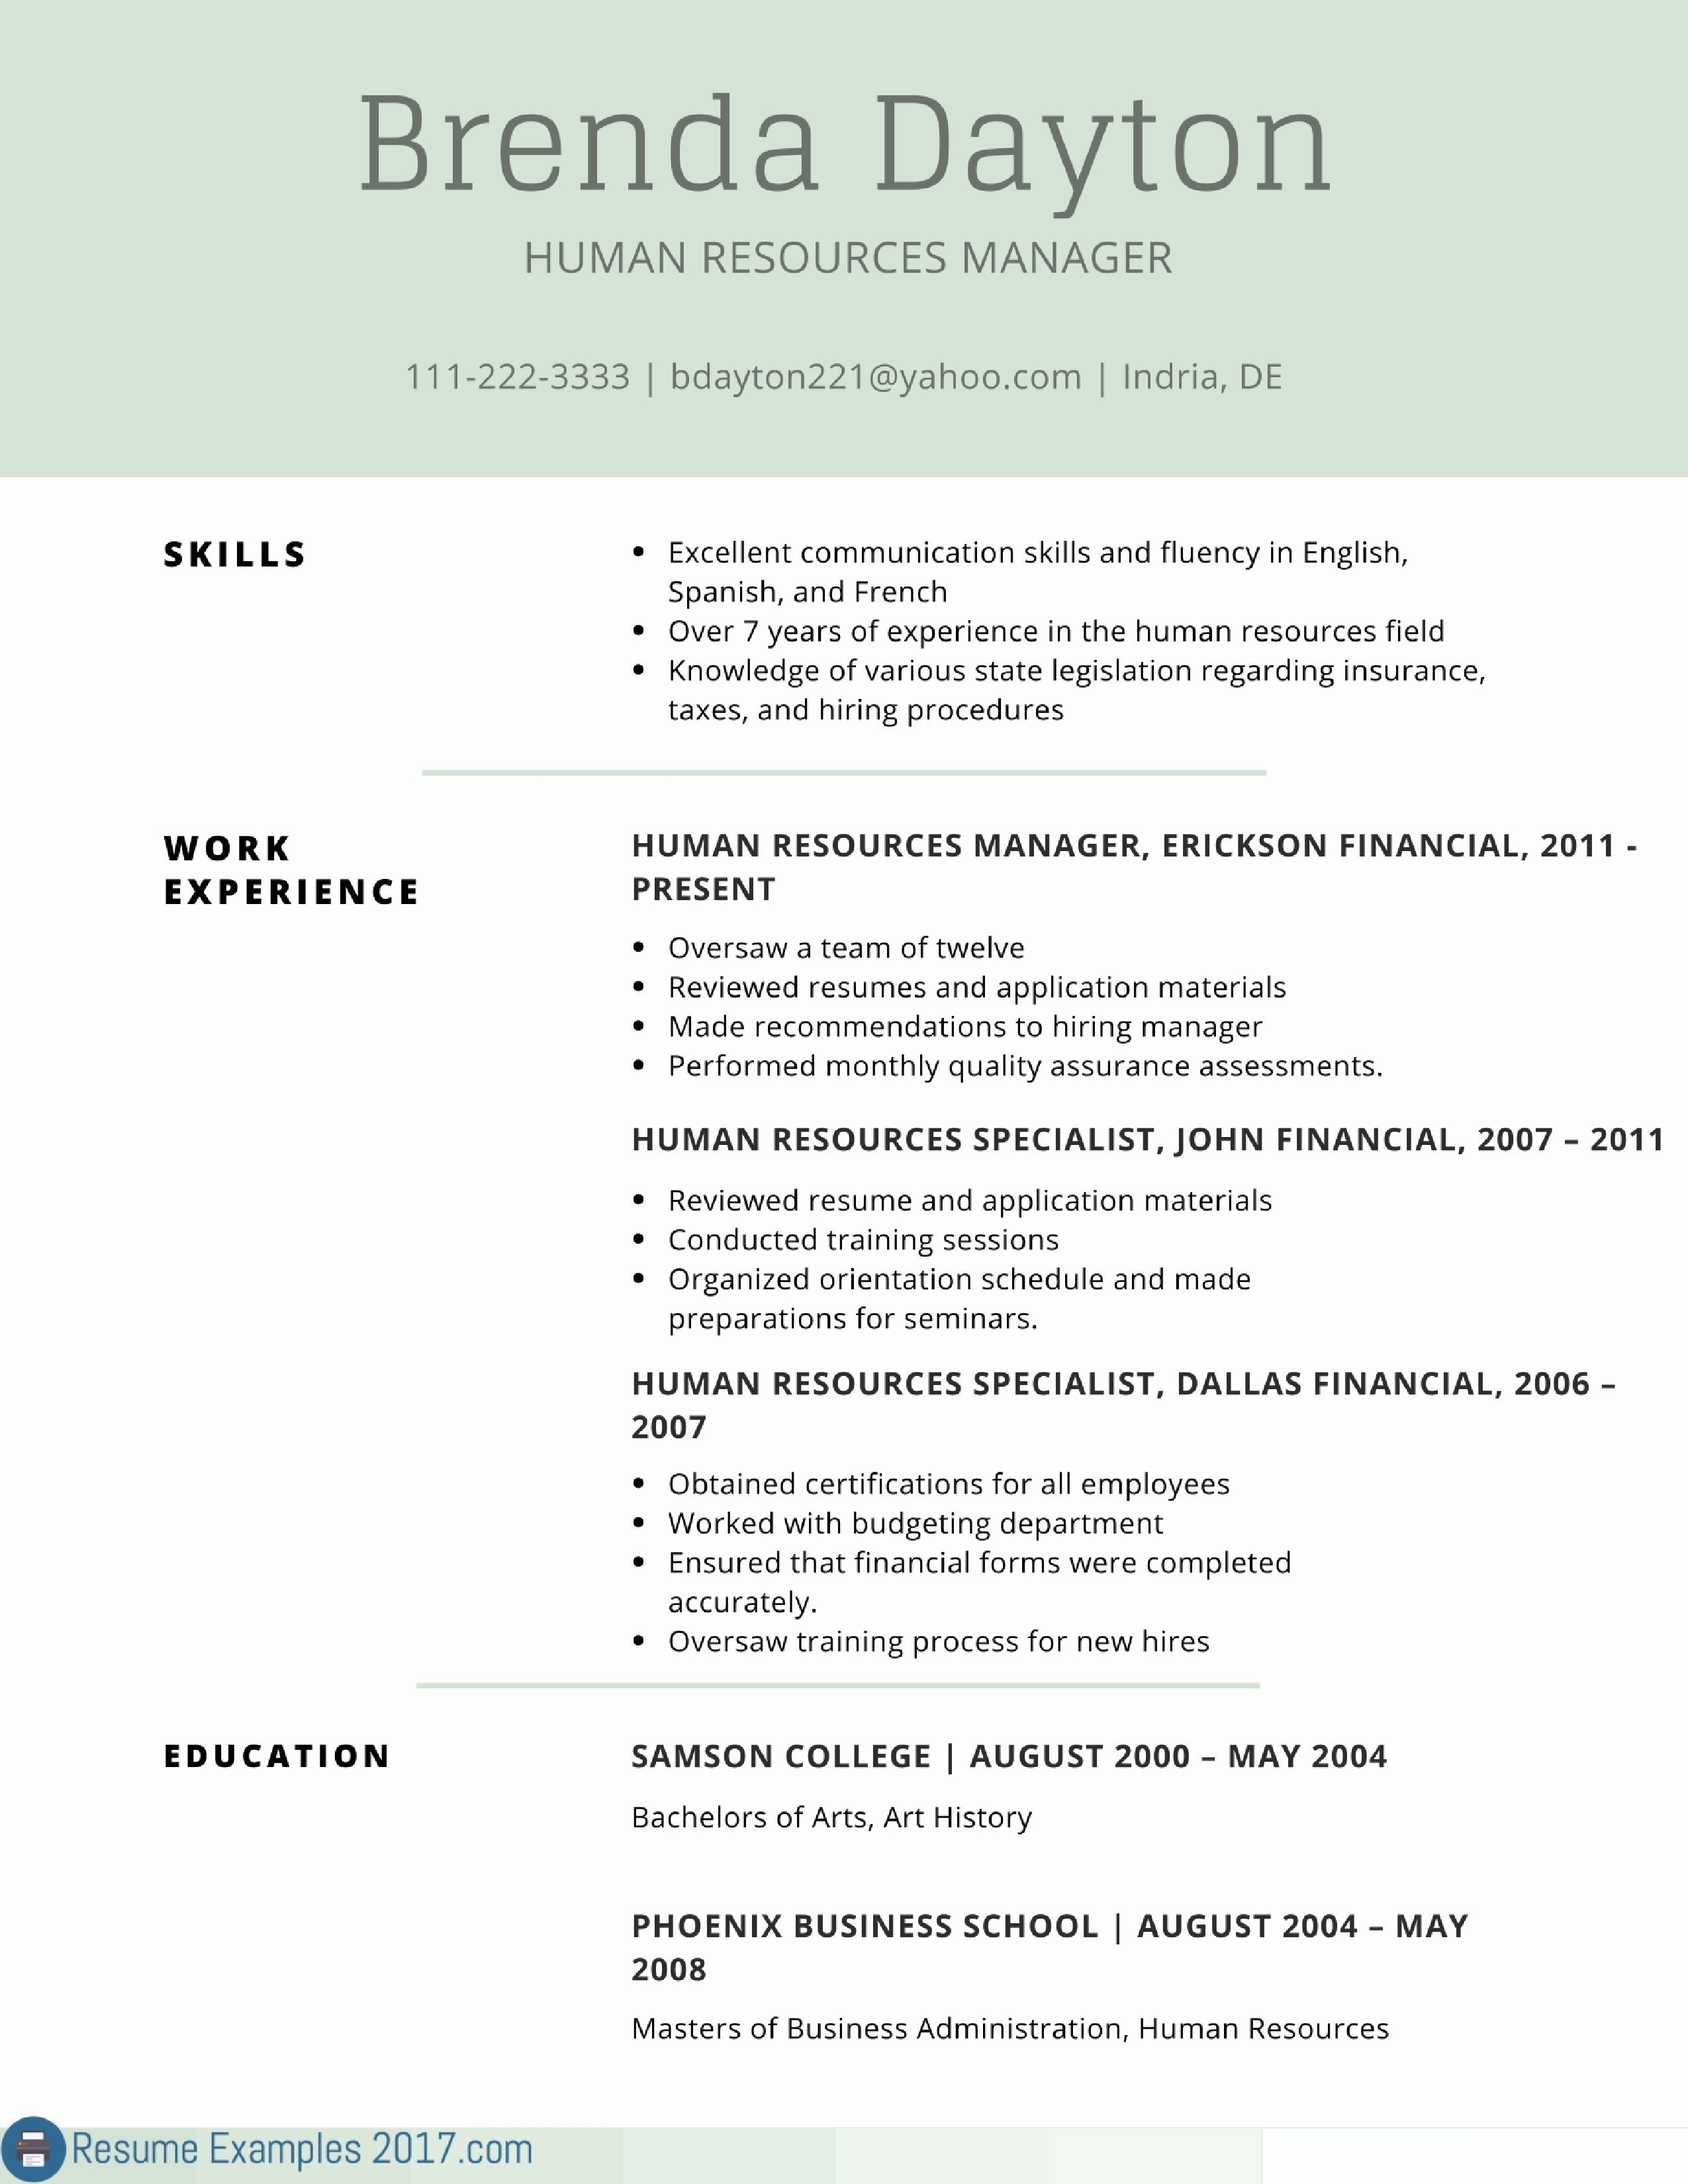 Military Experience On Resume - Military Resumes New Current Resume Styles New What is Resume Fresh